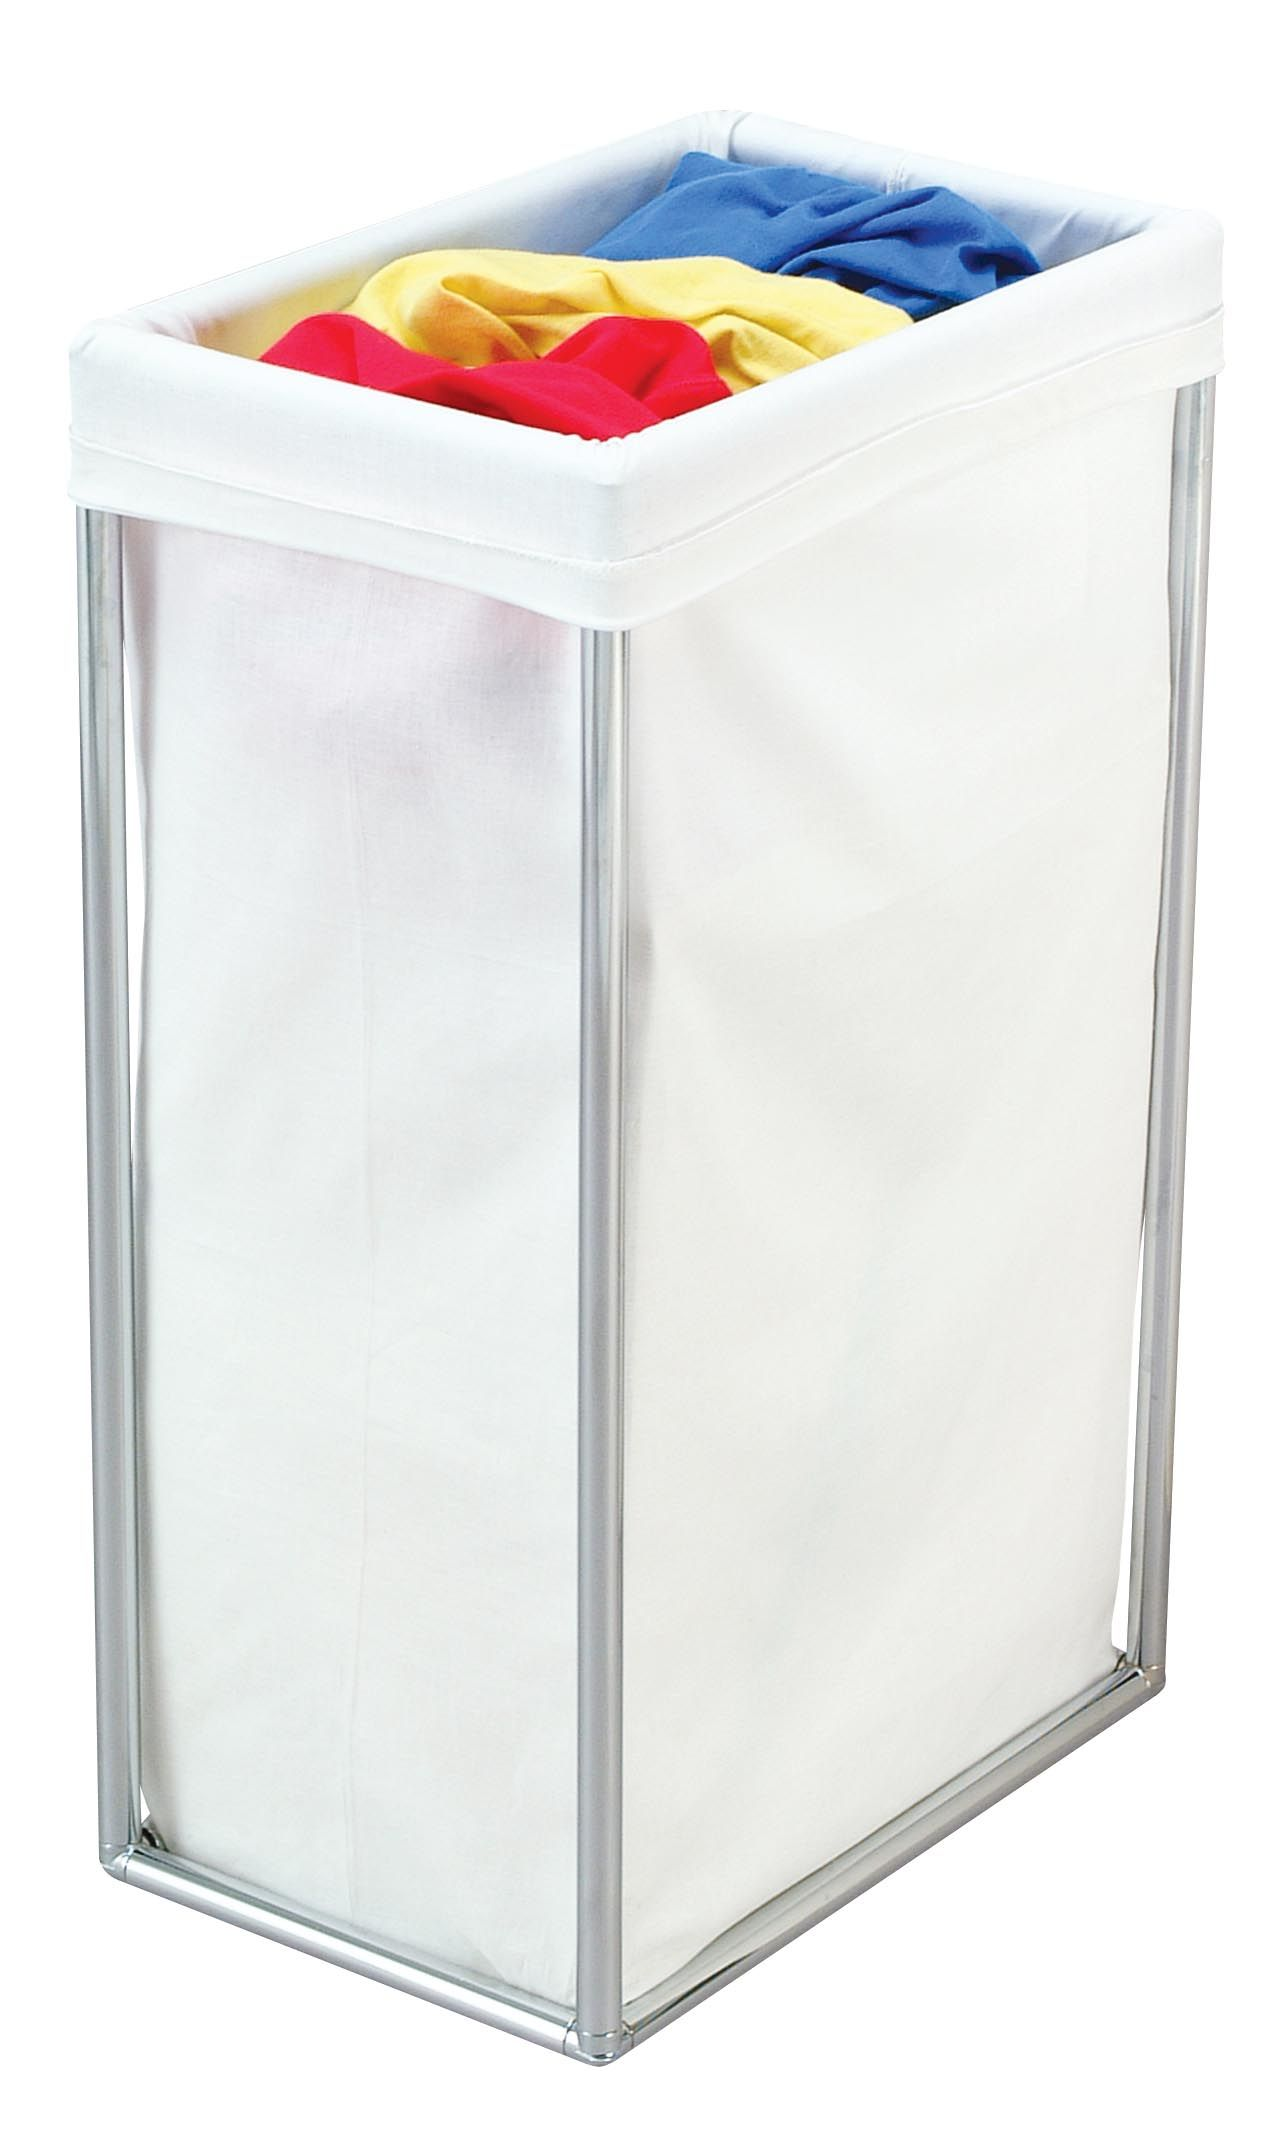 2615 Single Chrome Bag Stand Laundry Hamper with Cotton Laundry Bag ...